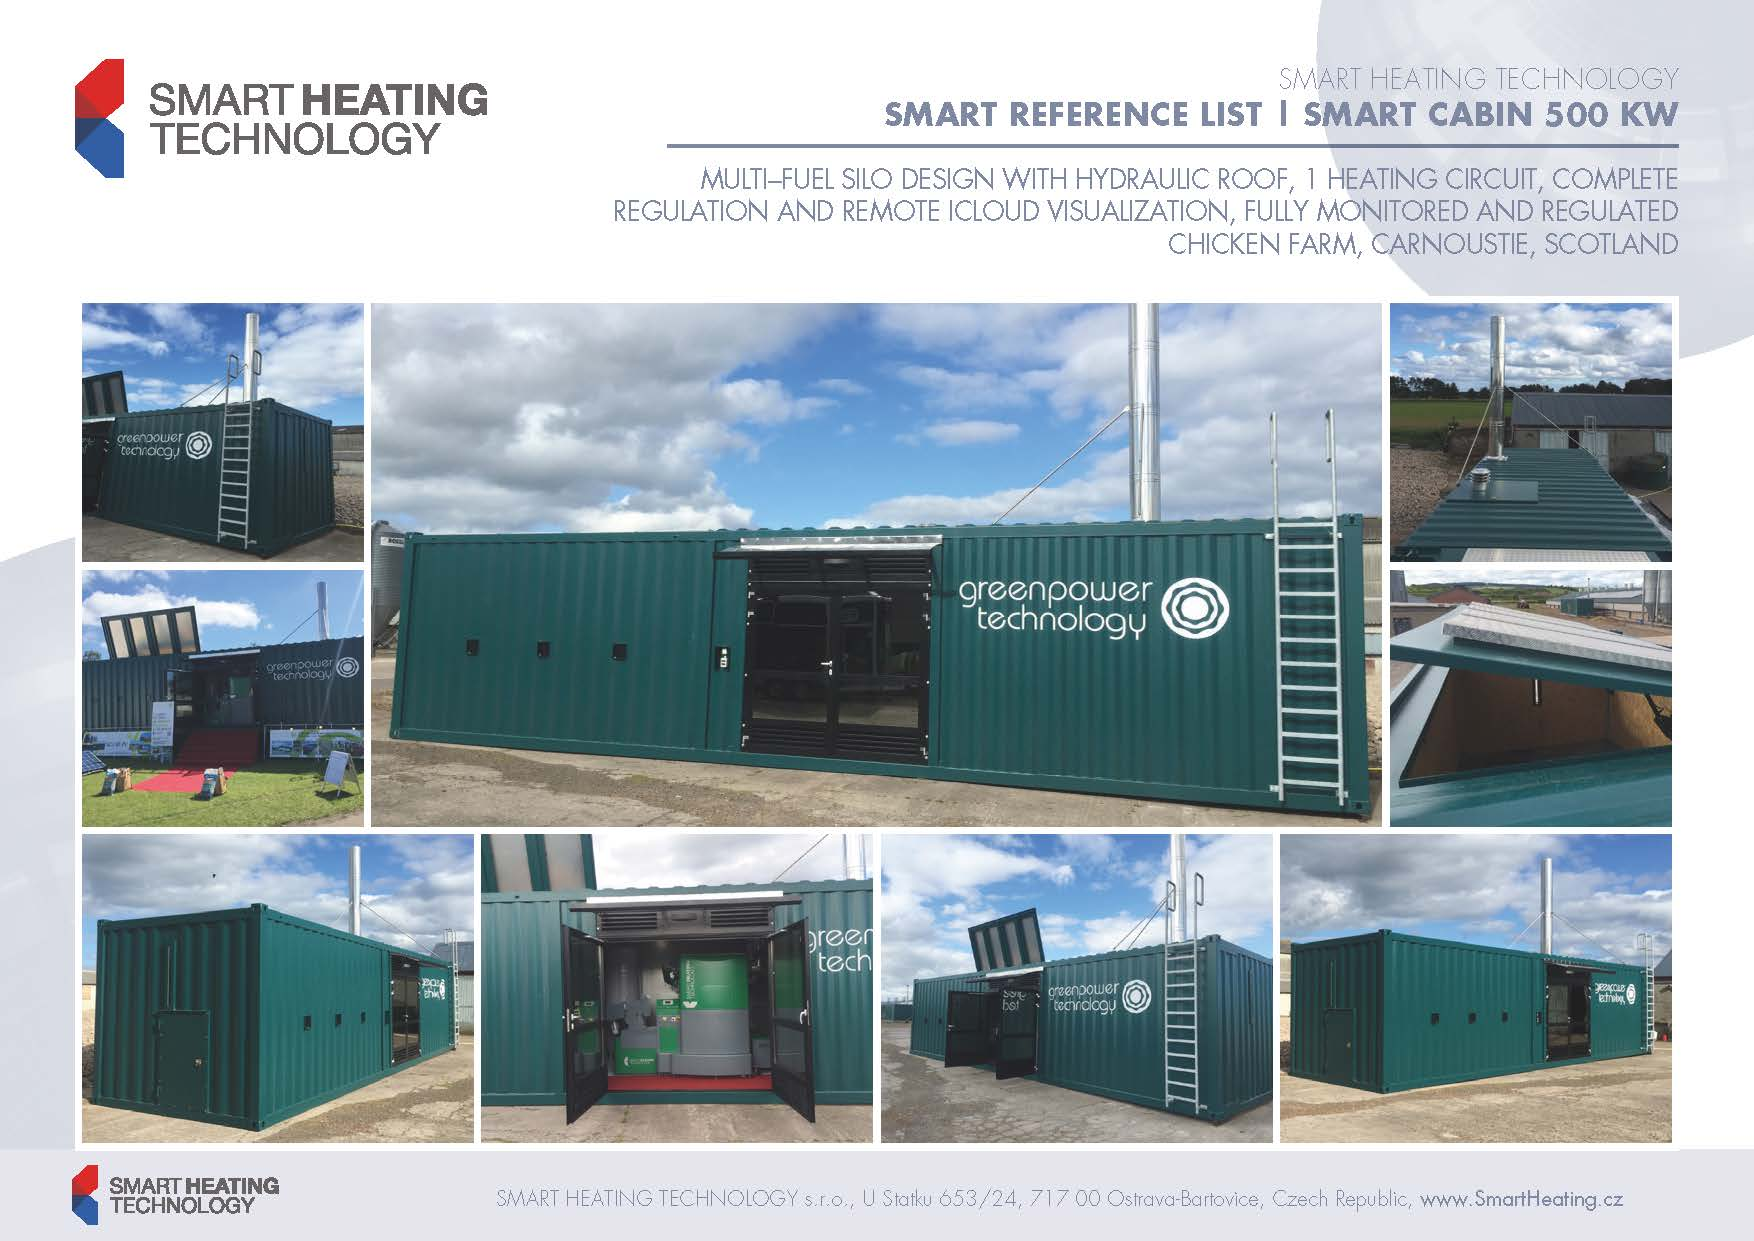 sht-smart-reference-list-smart-cabin-500kw-carnoustie3_stranka_1